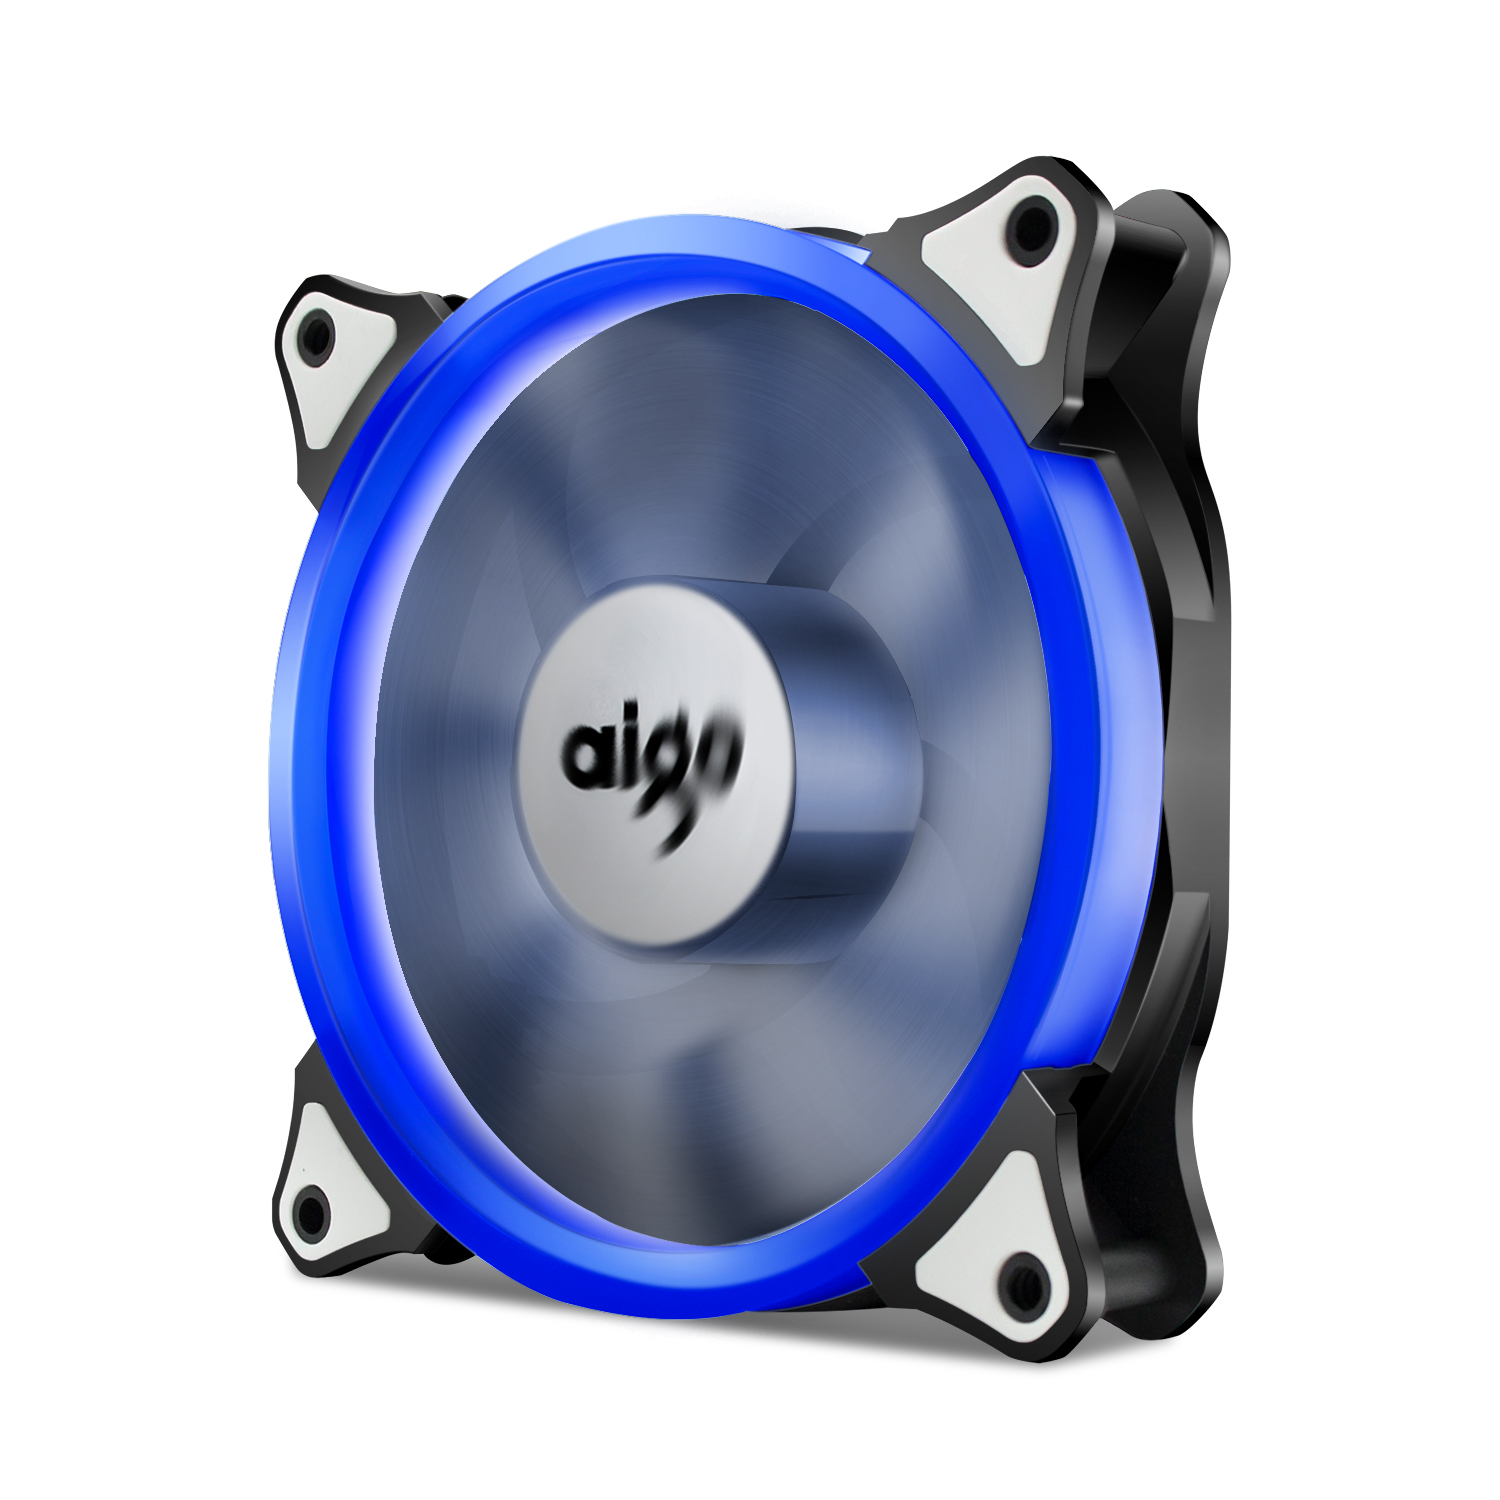 Aigo Halo Blue LED 120mm 12cm PC Computer Case Cooling Neon Fan Mod 4 Pin/3 Pin CPU Coolers and Radiators